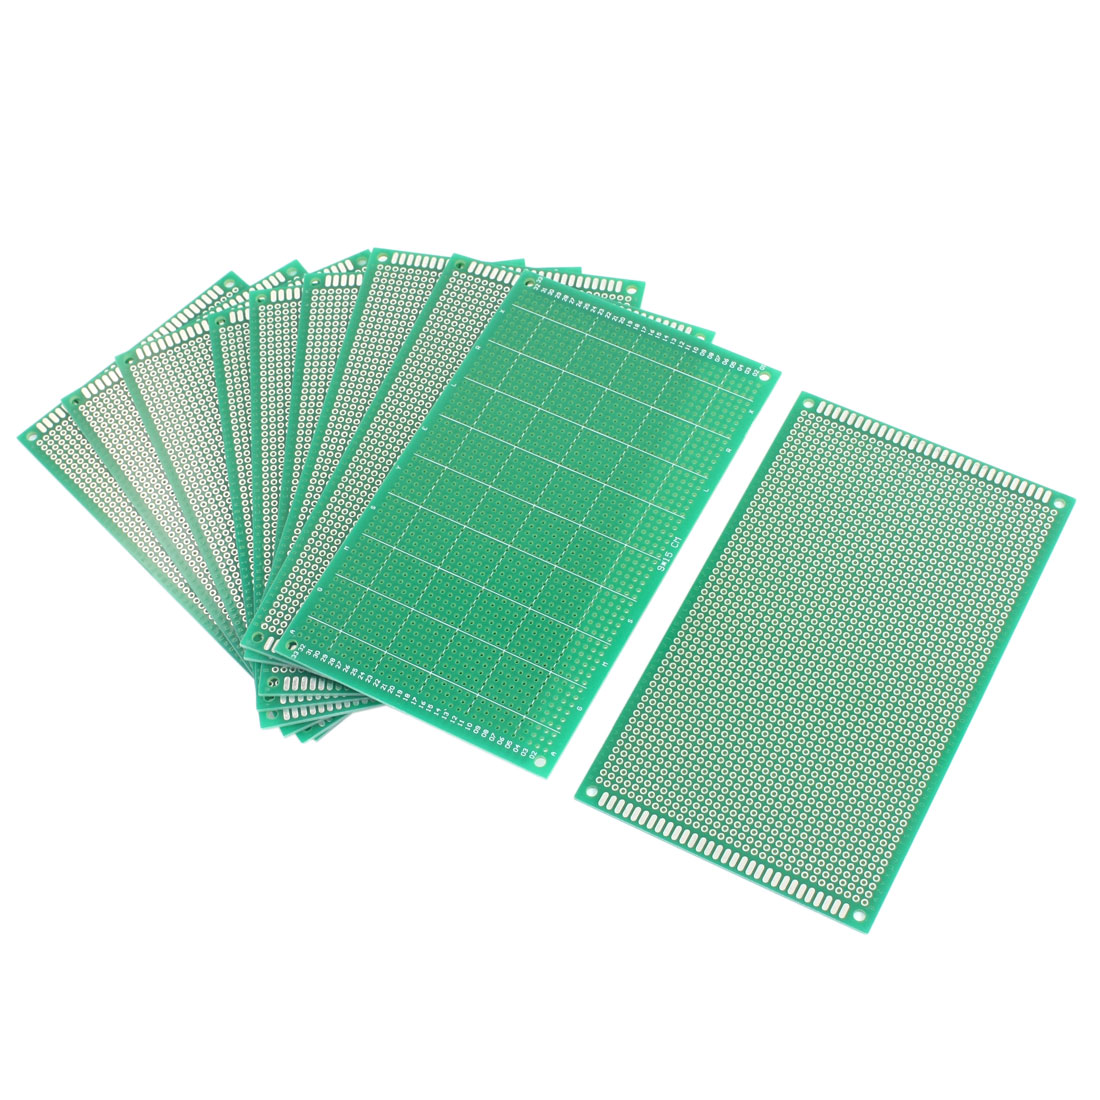 10Pcs DIY Universal Single Sided Protoboard Glass Fiber Prototyping PCB Printed Circuit Board 9cm x 15cm